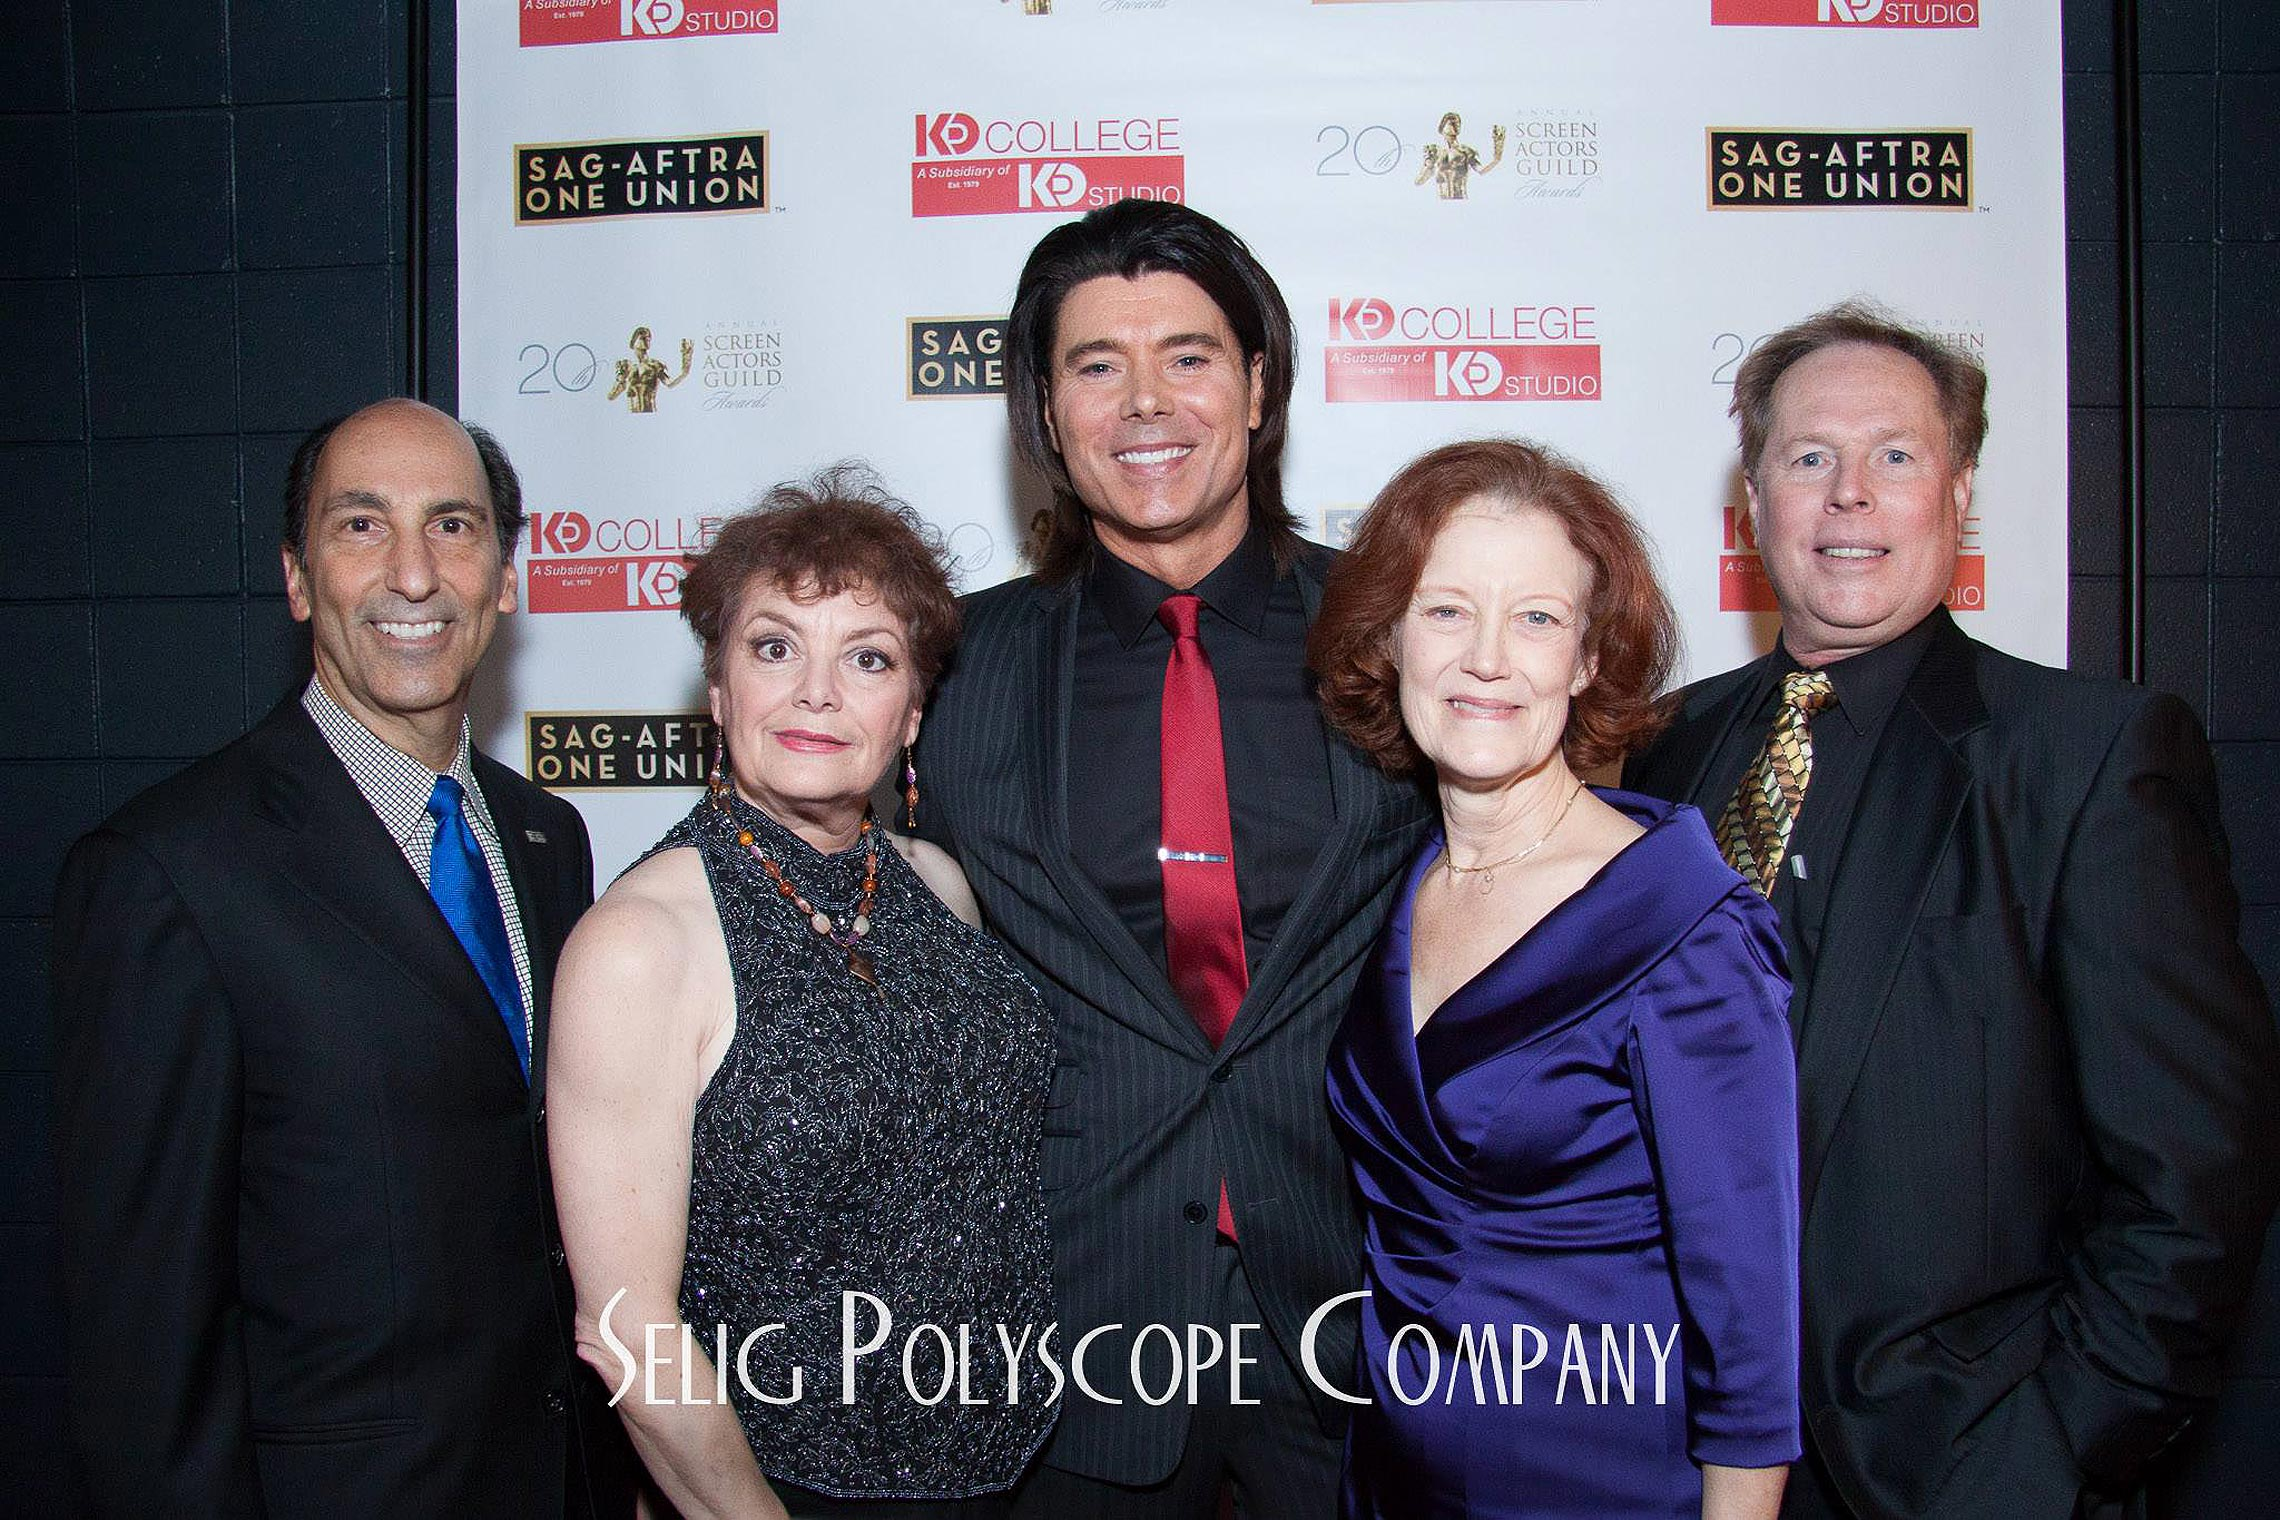 On the red carpet at the SAG Awards with Hector Garcia, Jacqueline McCall, Benjamin Dane, Gail Cronauer, and Brian Dakota.